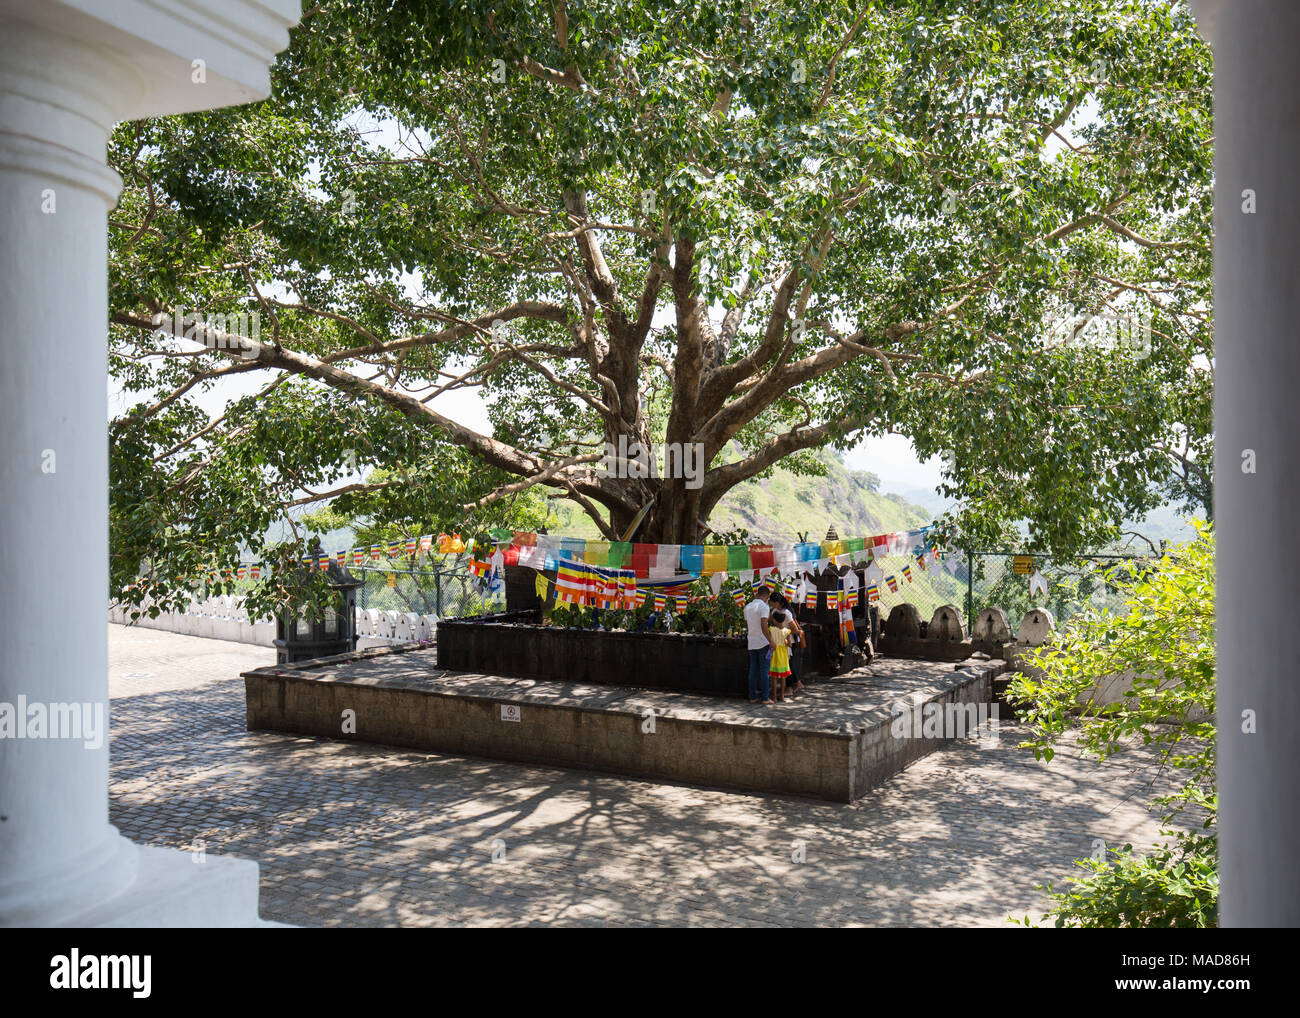 Tourists praying at Bodhi tree decorated with buddhist praying flags, Dambulla, Sri Lanka, Asia. Stock Photo